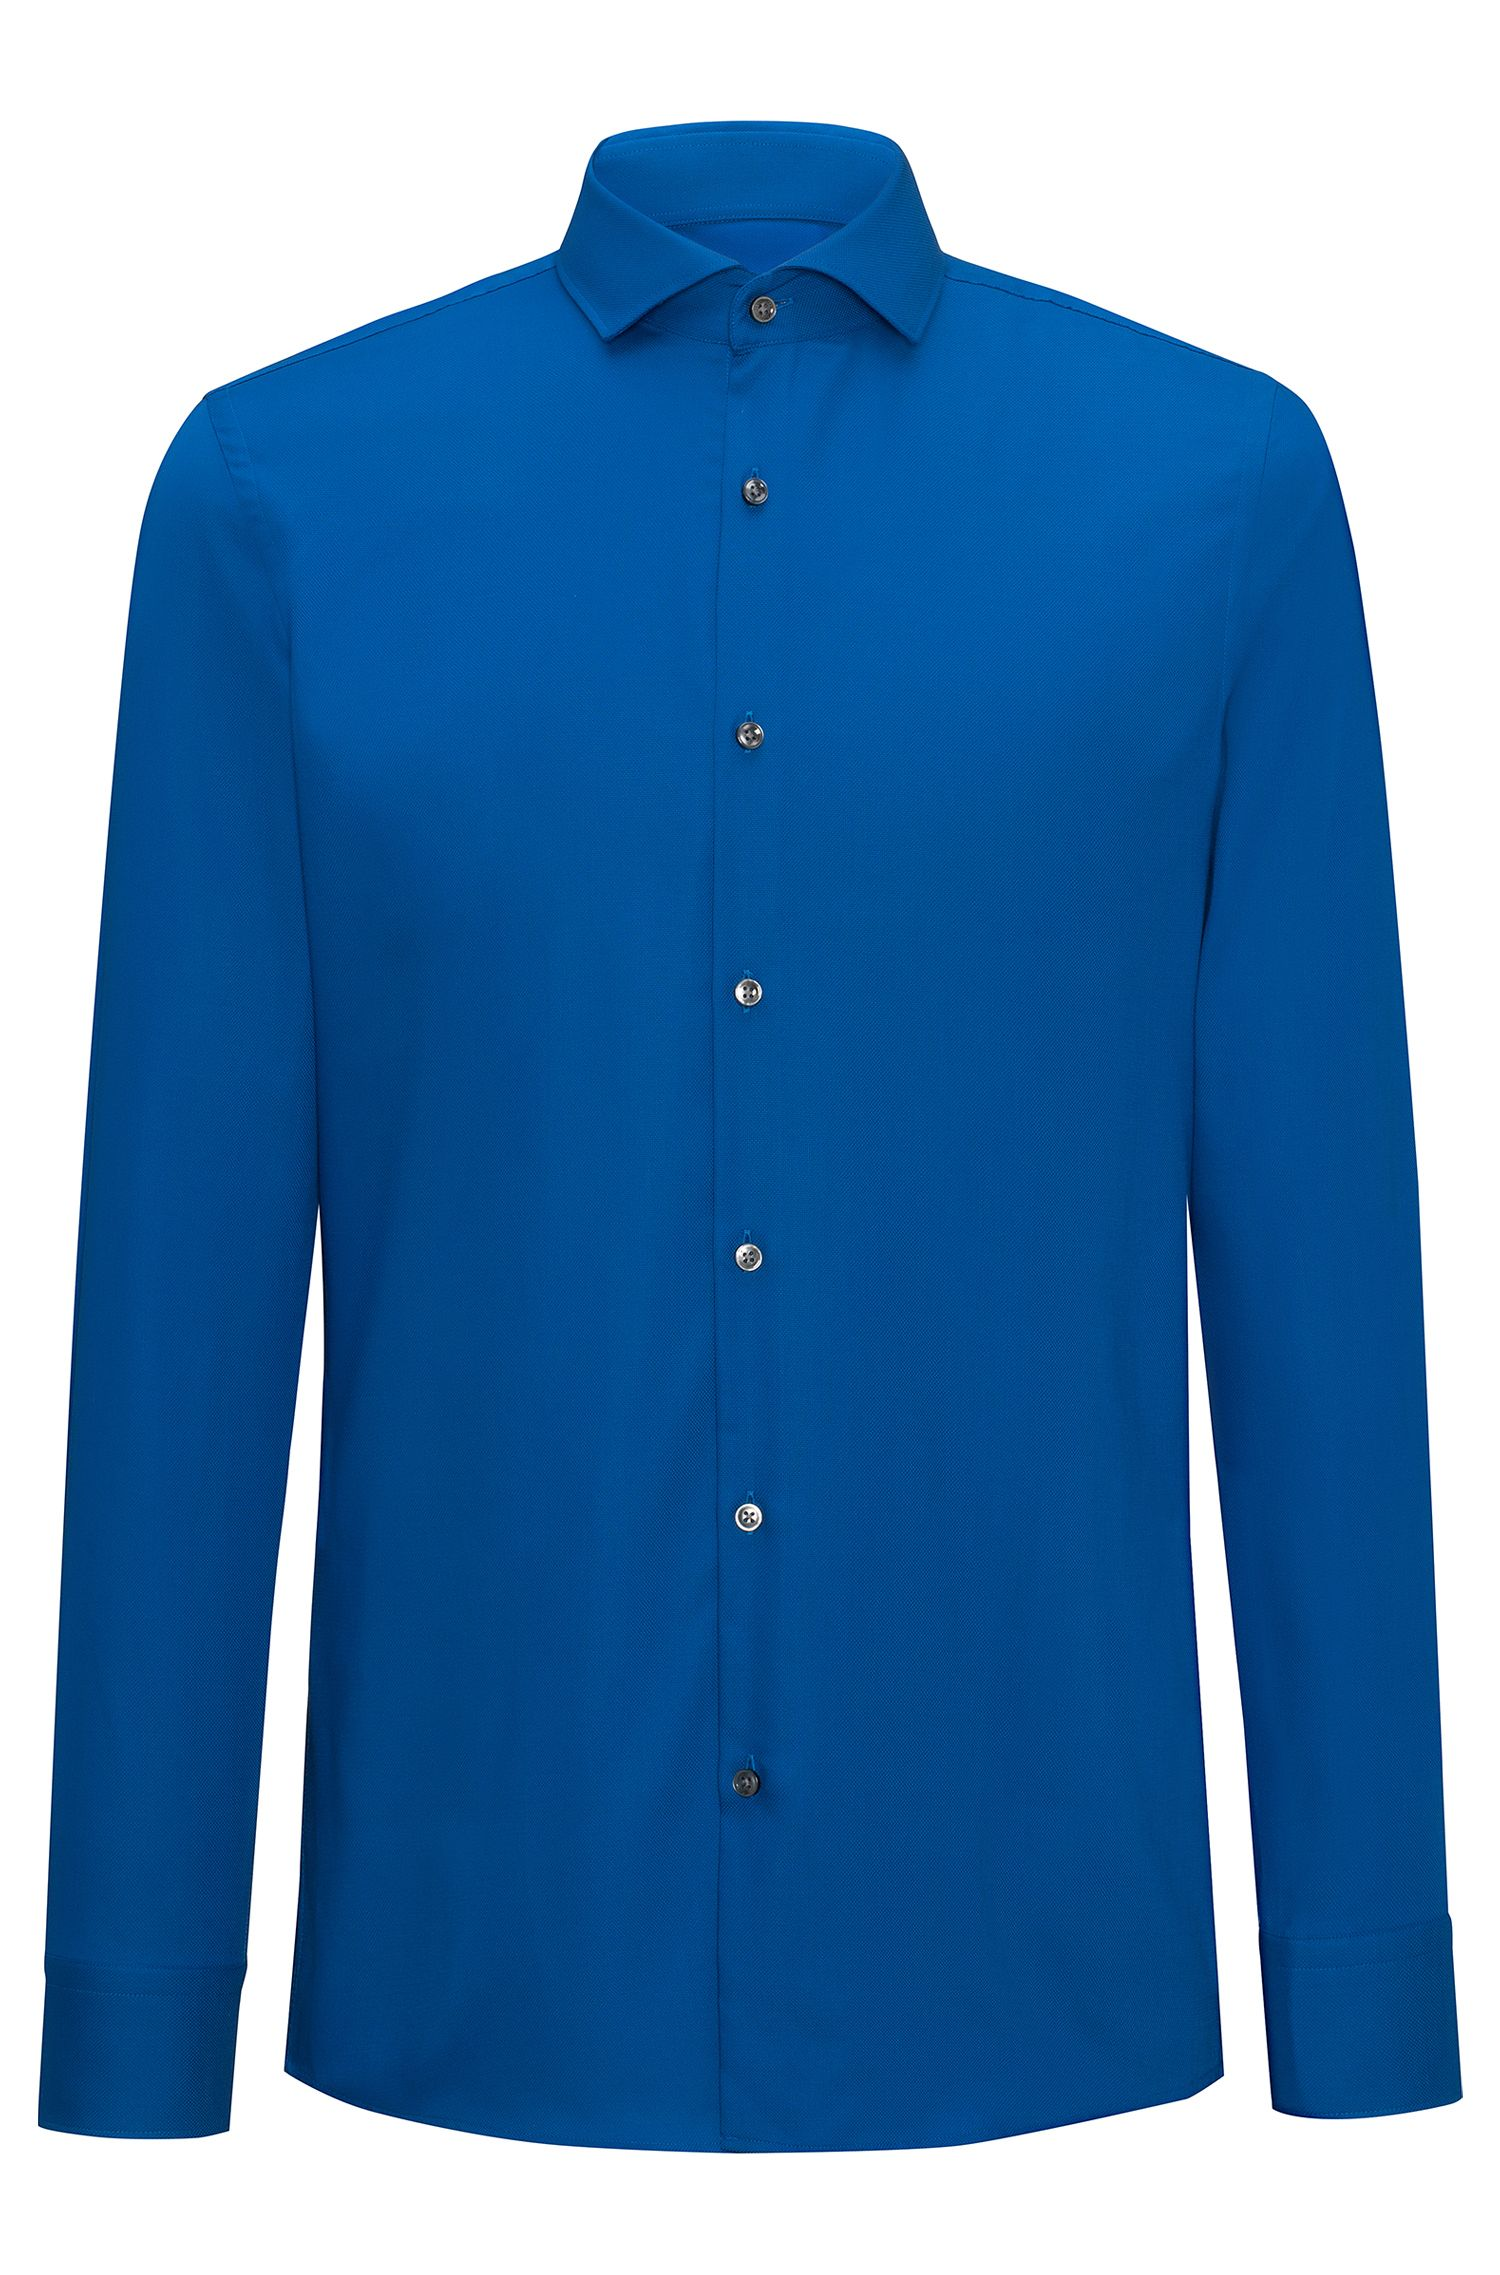 Slim-fit shirt in easy-iron cotton poplin with spread collar